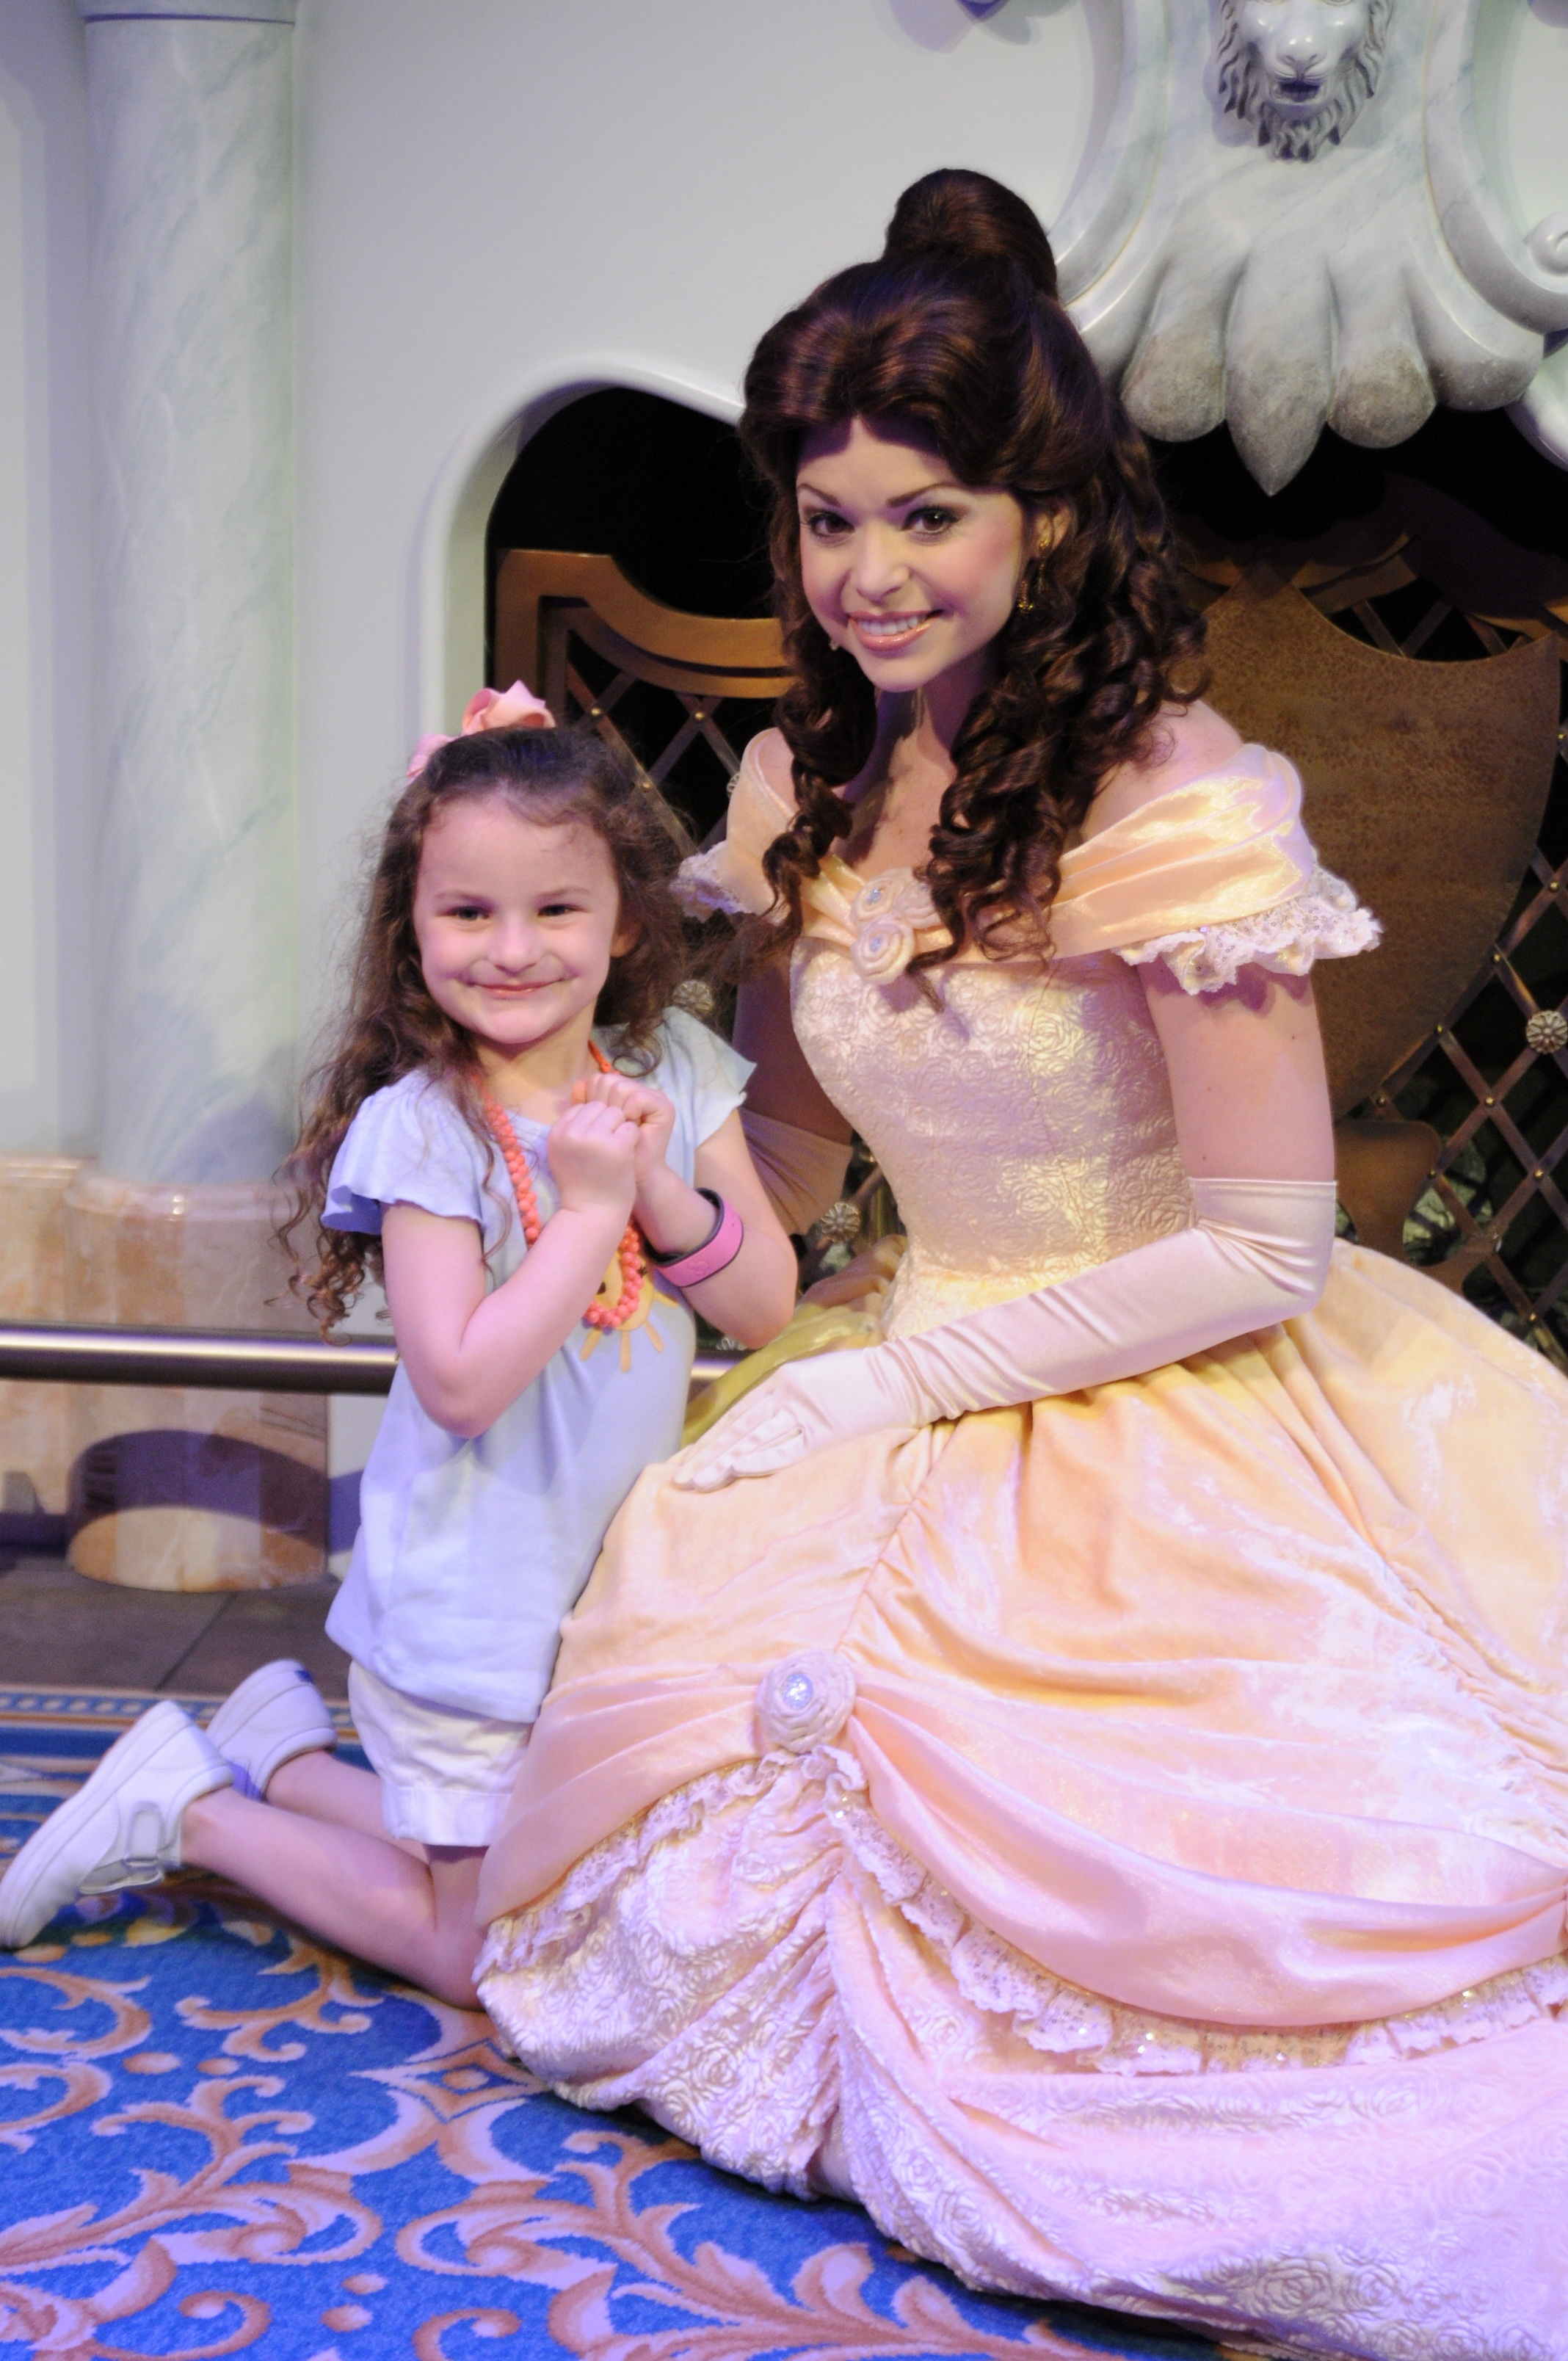 Meeting Princess Belle